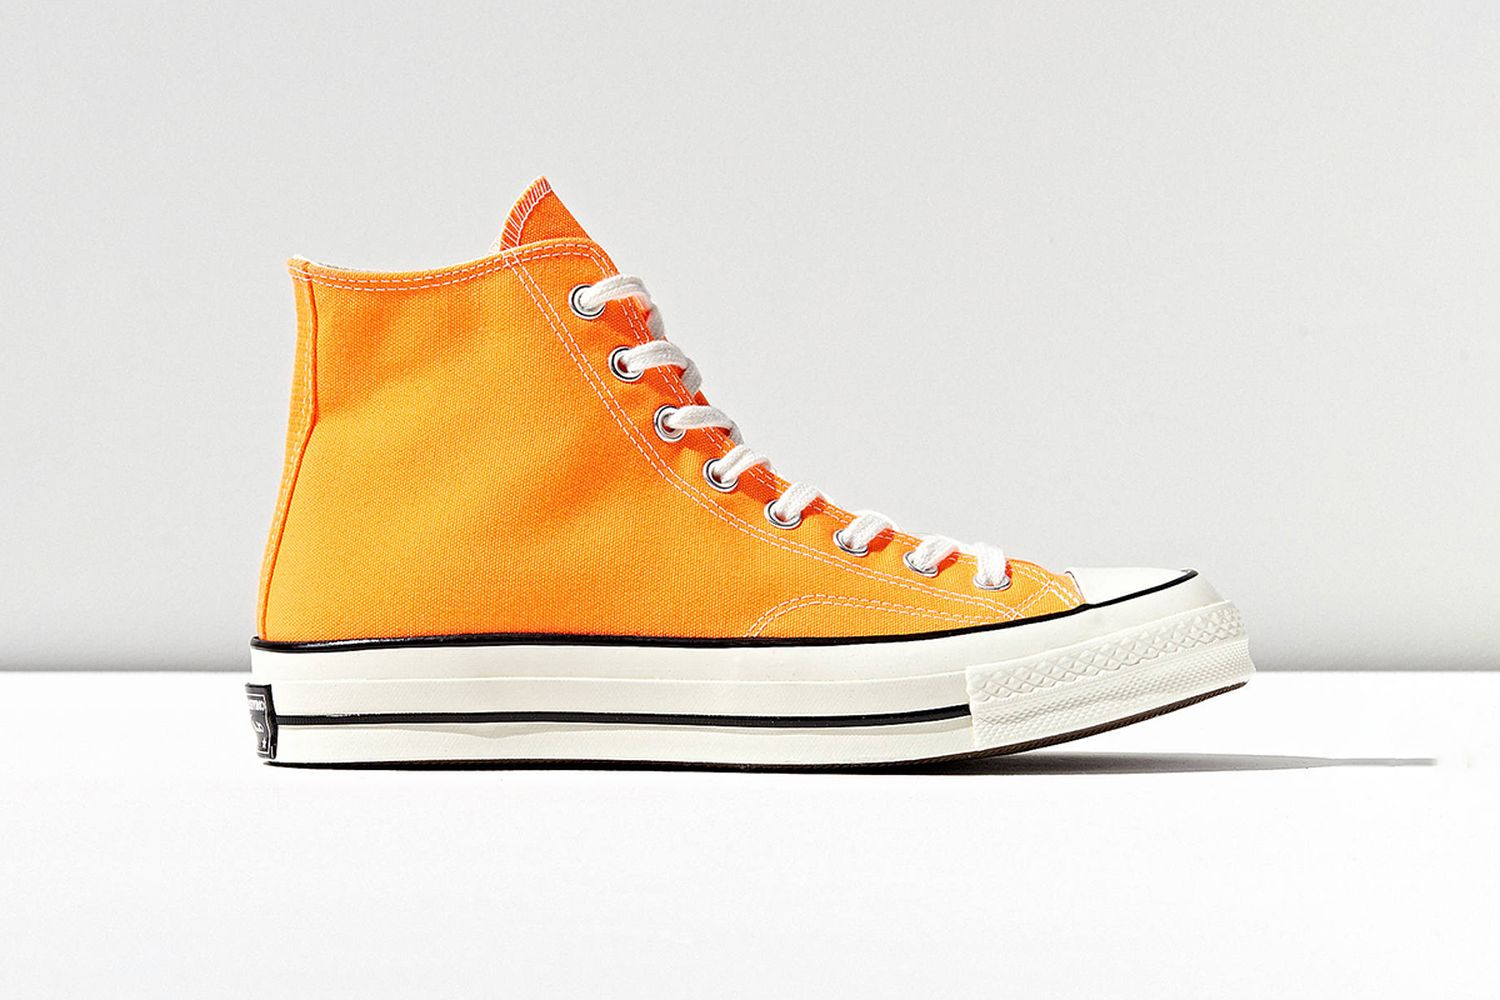 Chuck 70 High Top Sneaker